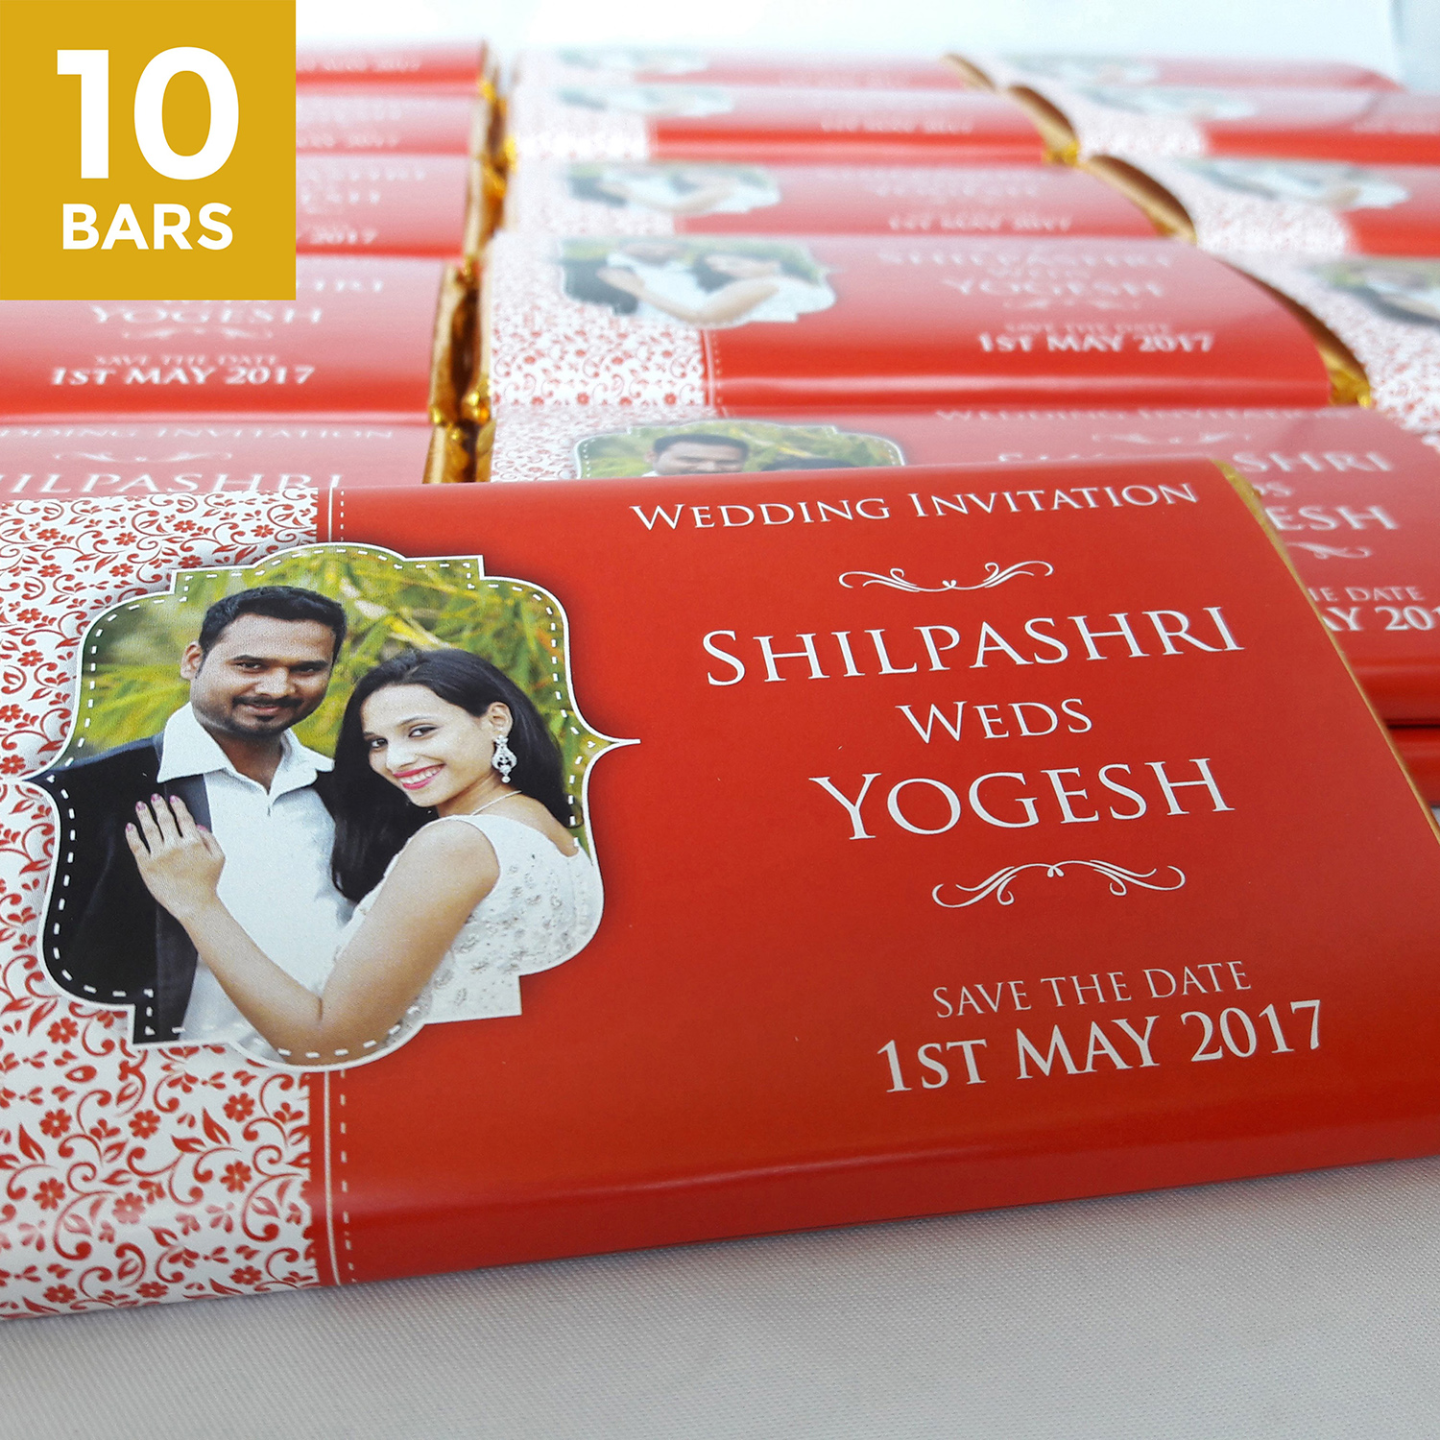 Wedding Return Gifts, Personalize Chocolates -10 Bars